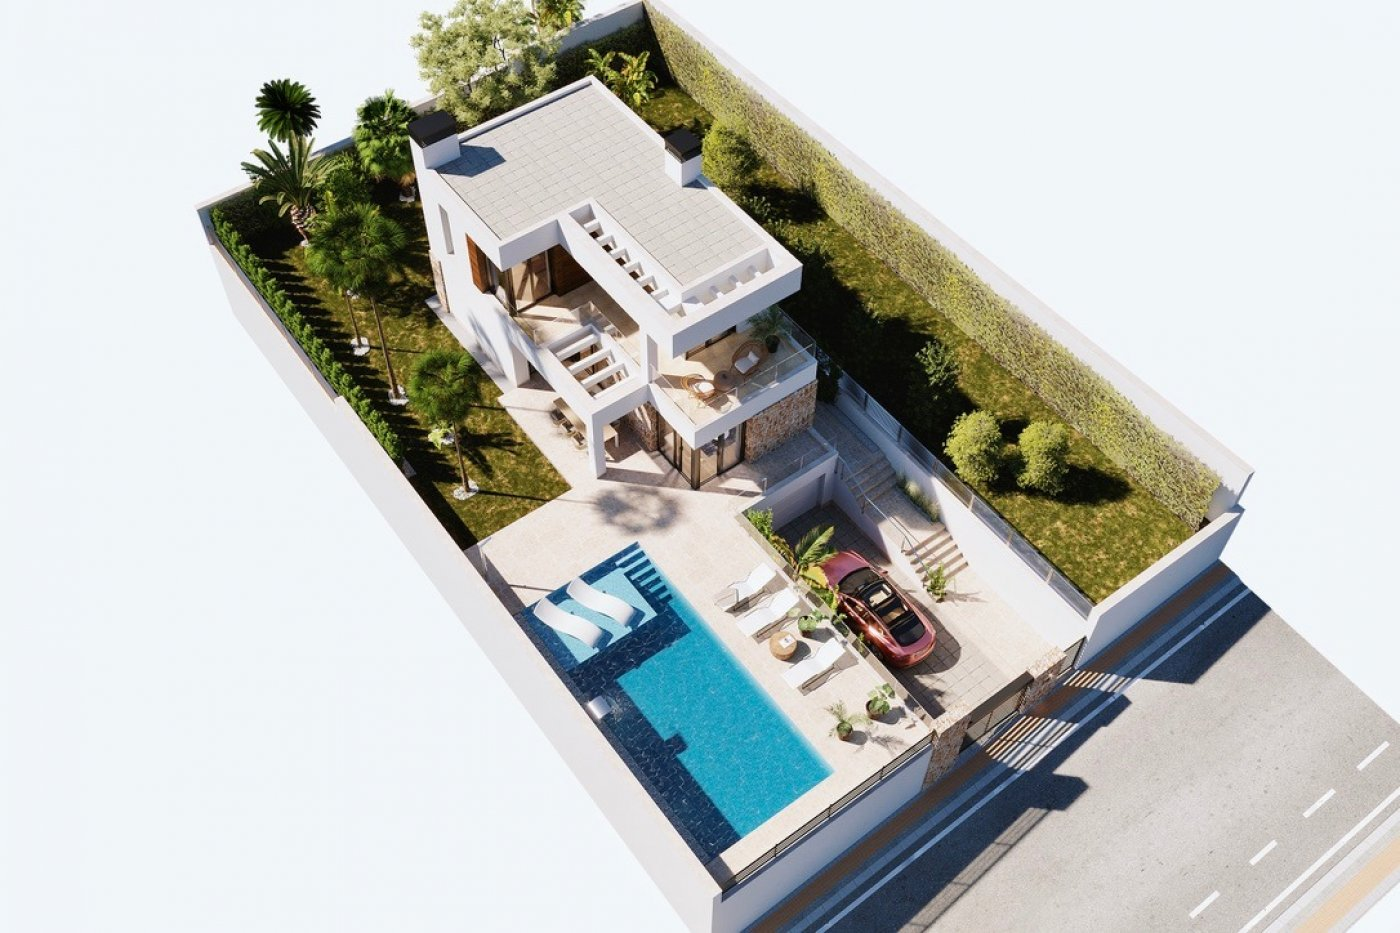 Gallery Image 15 of Luxury villa in Finestrat fantastic views over Benidorm, southwest facing - own pool, large basement